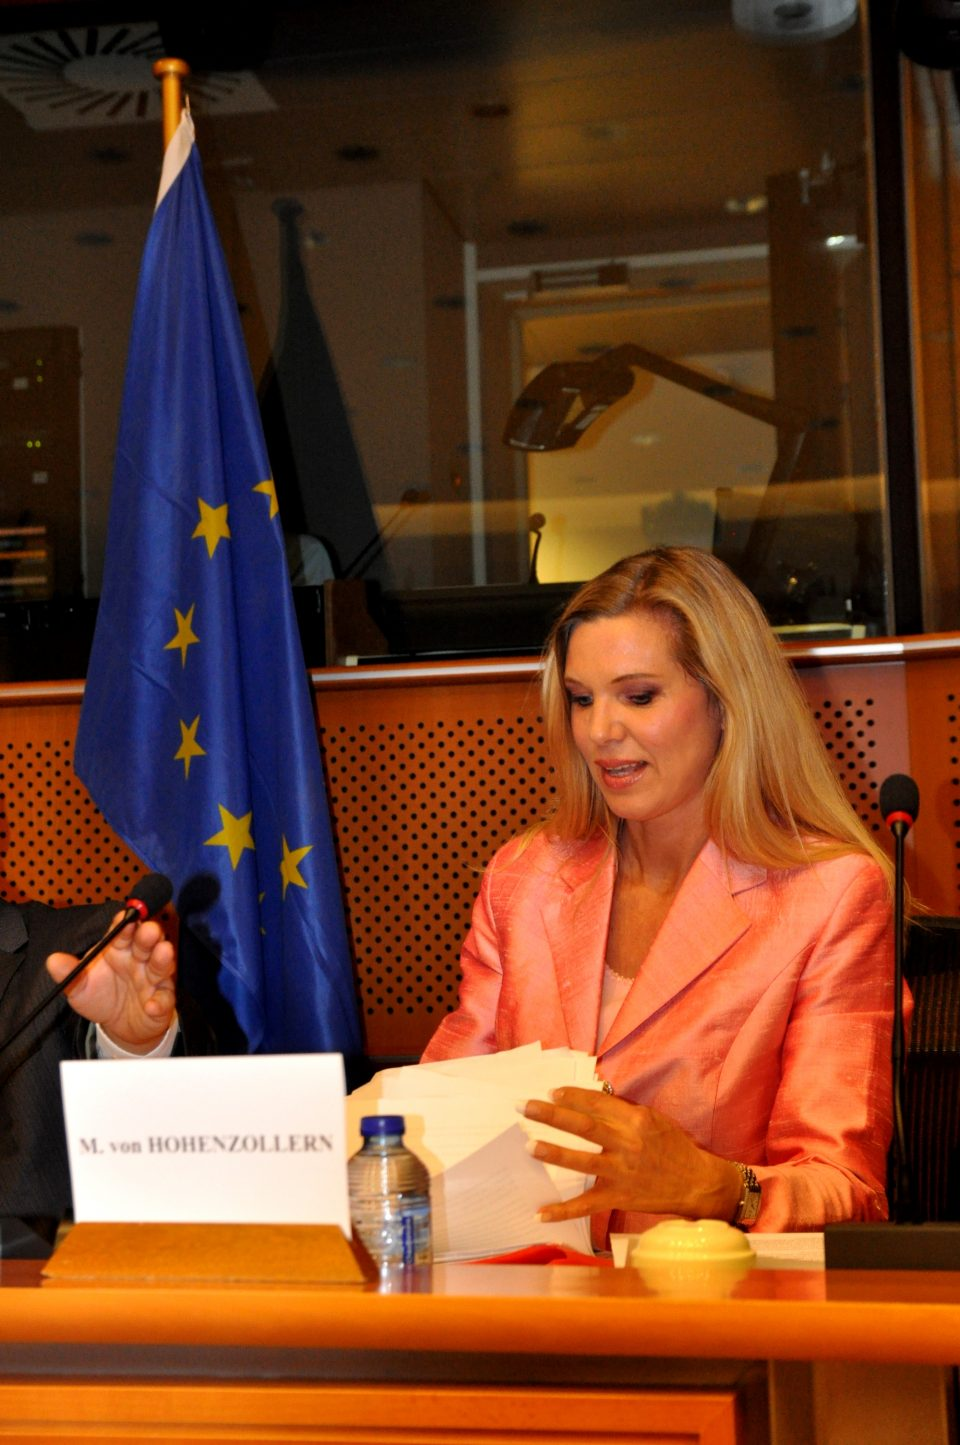 Princess Maja von Hohenzollern speaks before EU Parliament in Brussels  960x1445 - H.H. Princess Maja von Hohenzollern, a creative interior designer